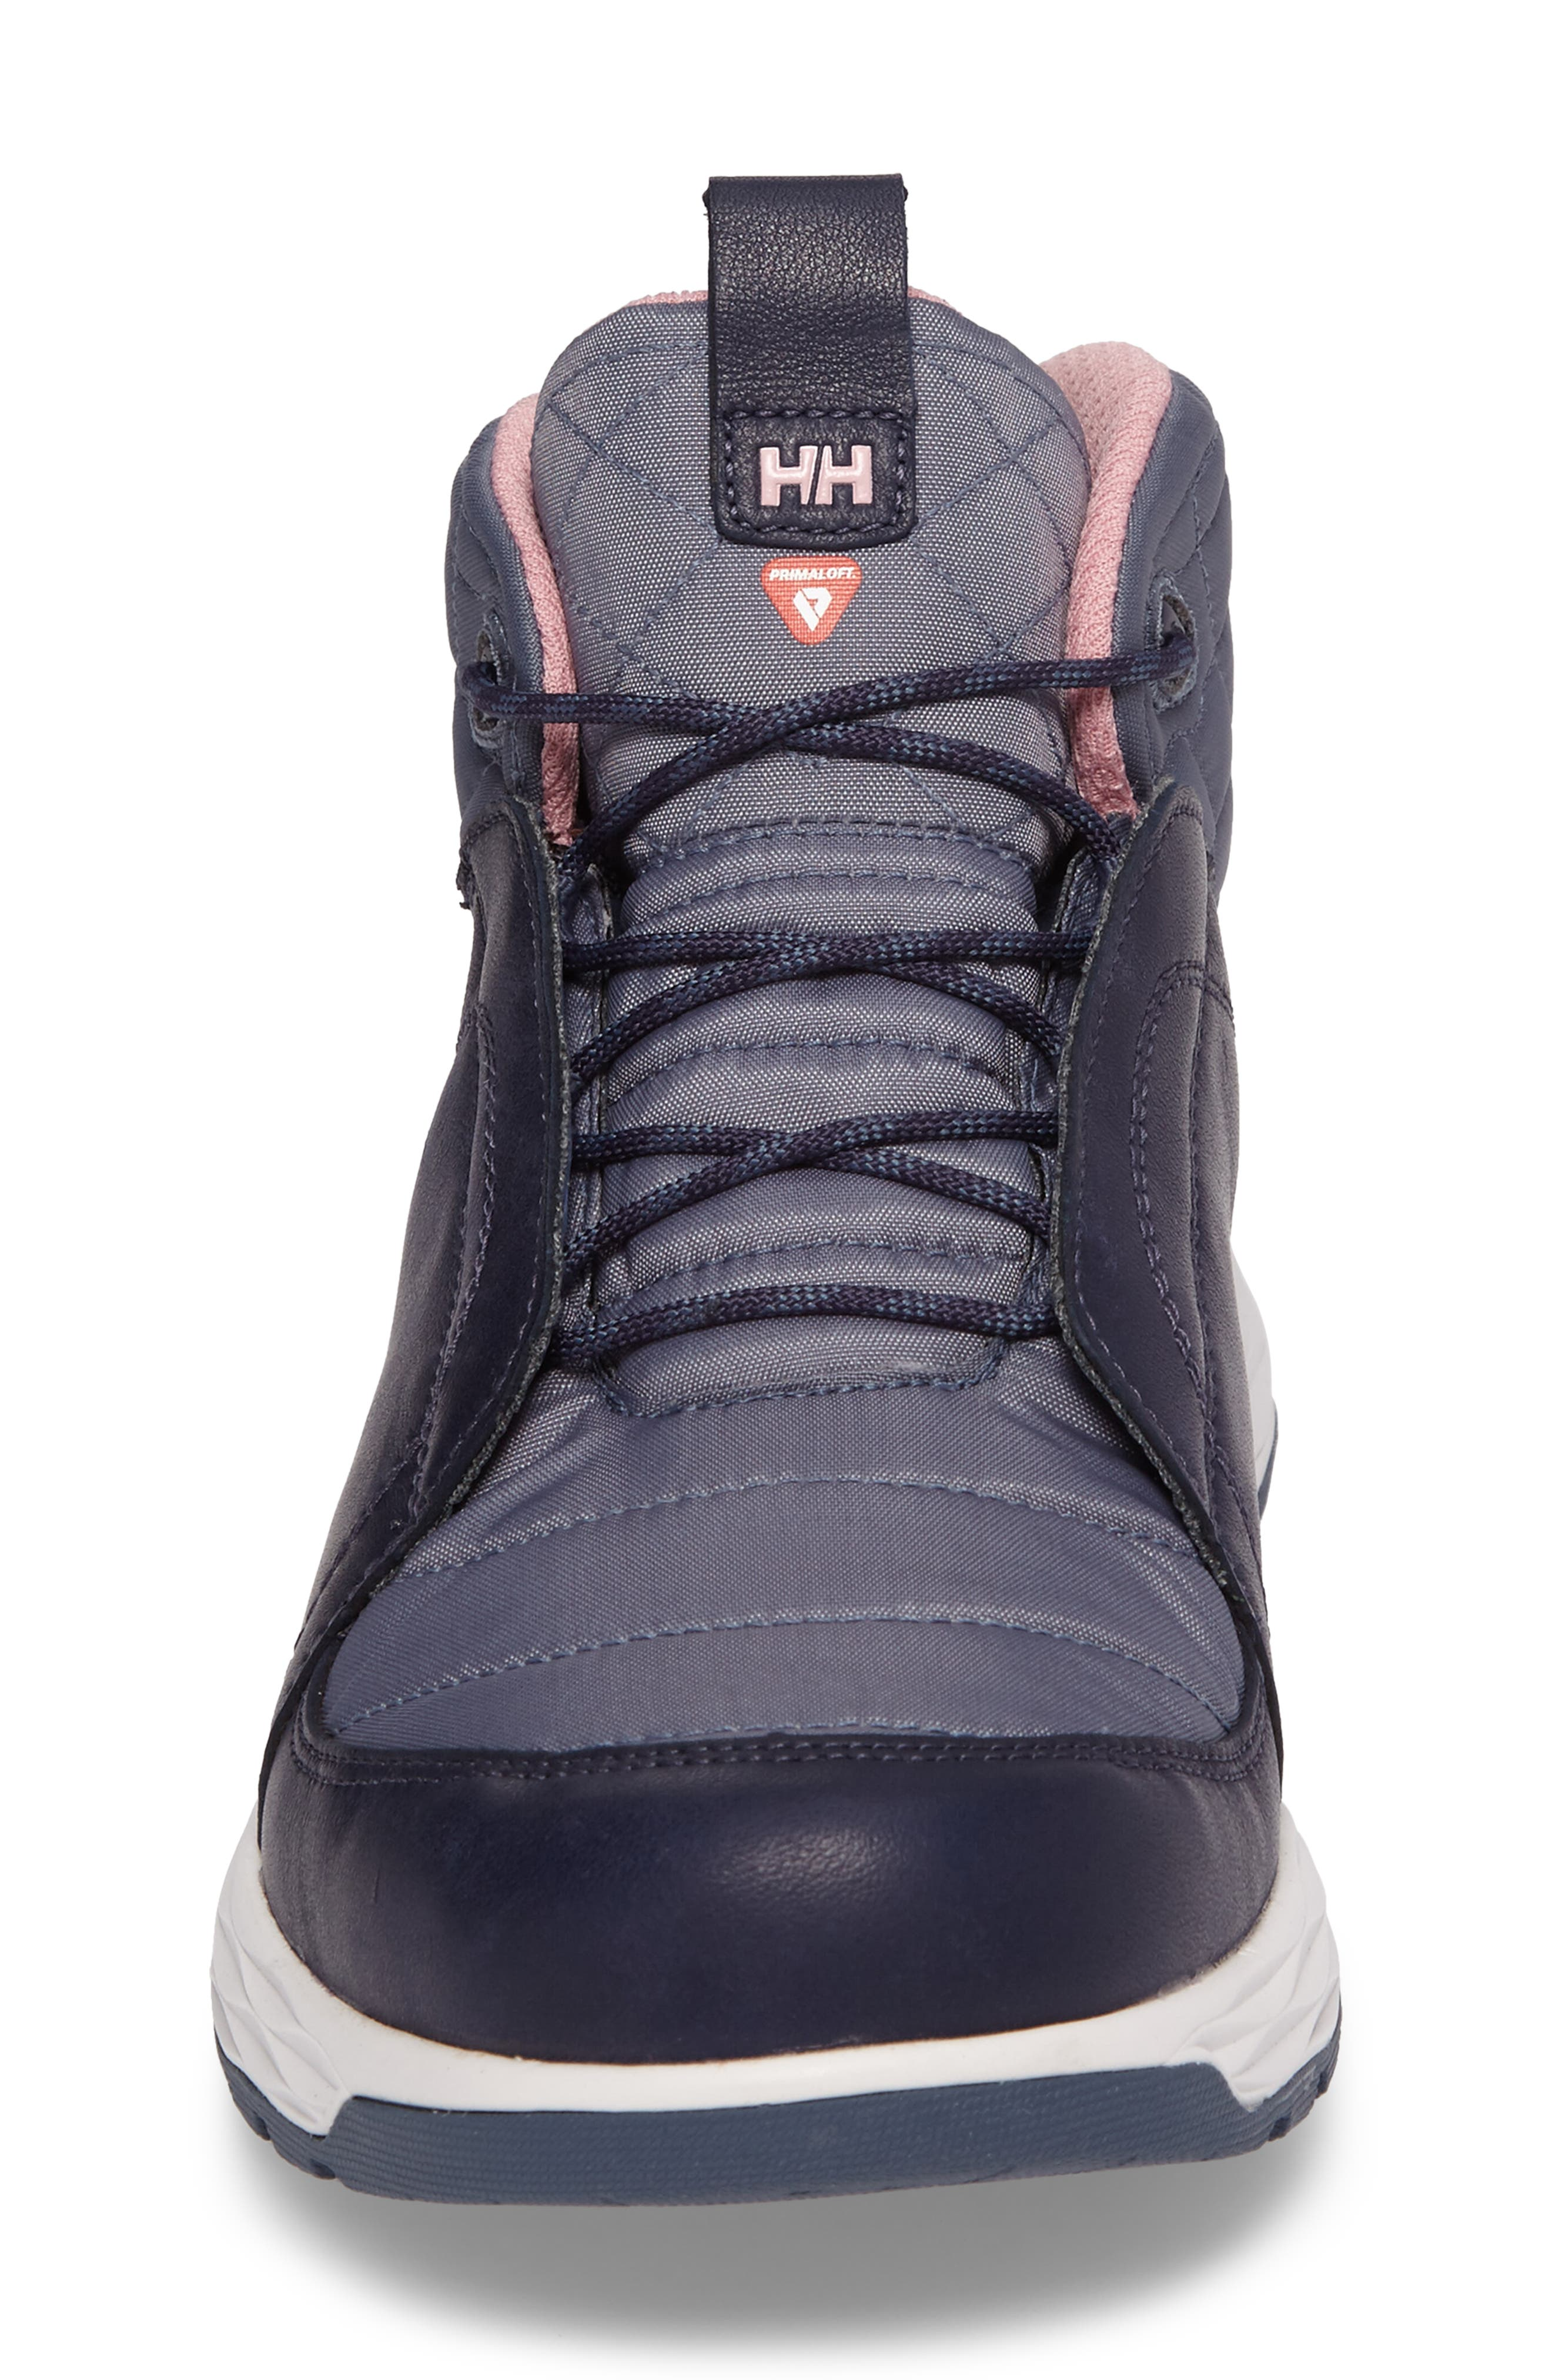 Alternate Image 4  - Helly Hansen Ten Below Waterproof High Top Sneaker (Women)